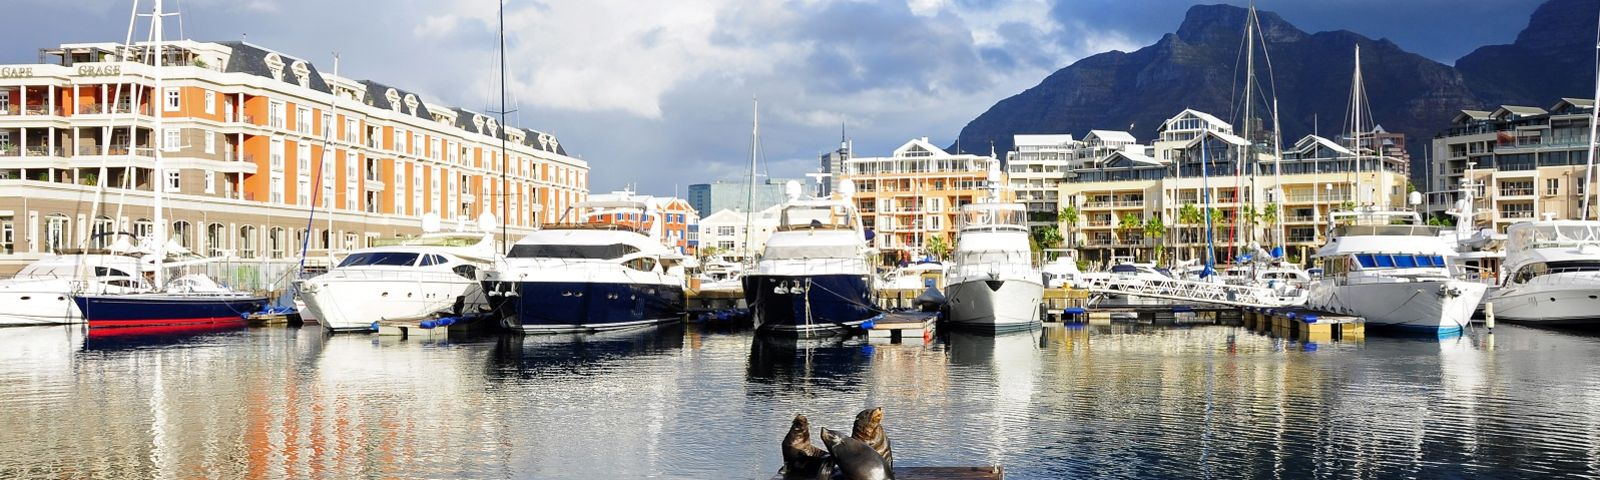 Enchanting Travels South Africa Tours Sea lion on a jetty in Cape Town V&A Waterfront